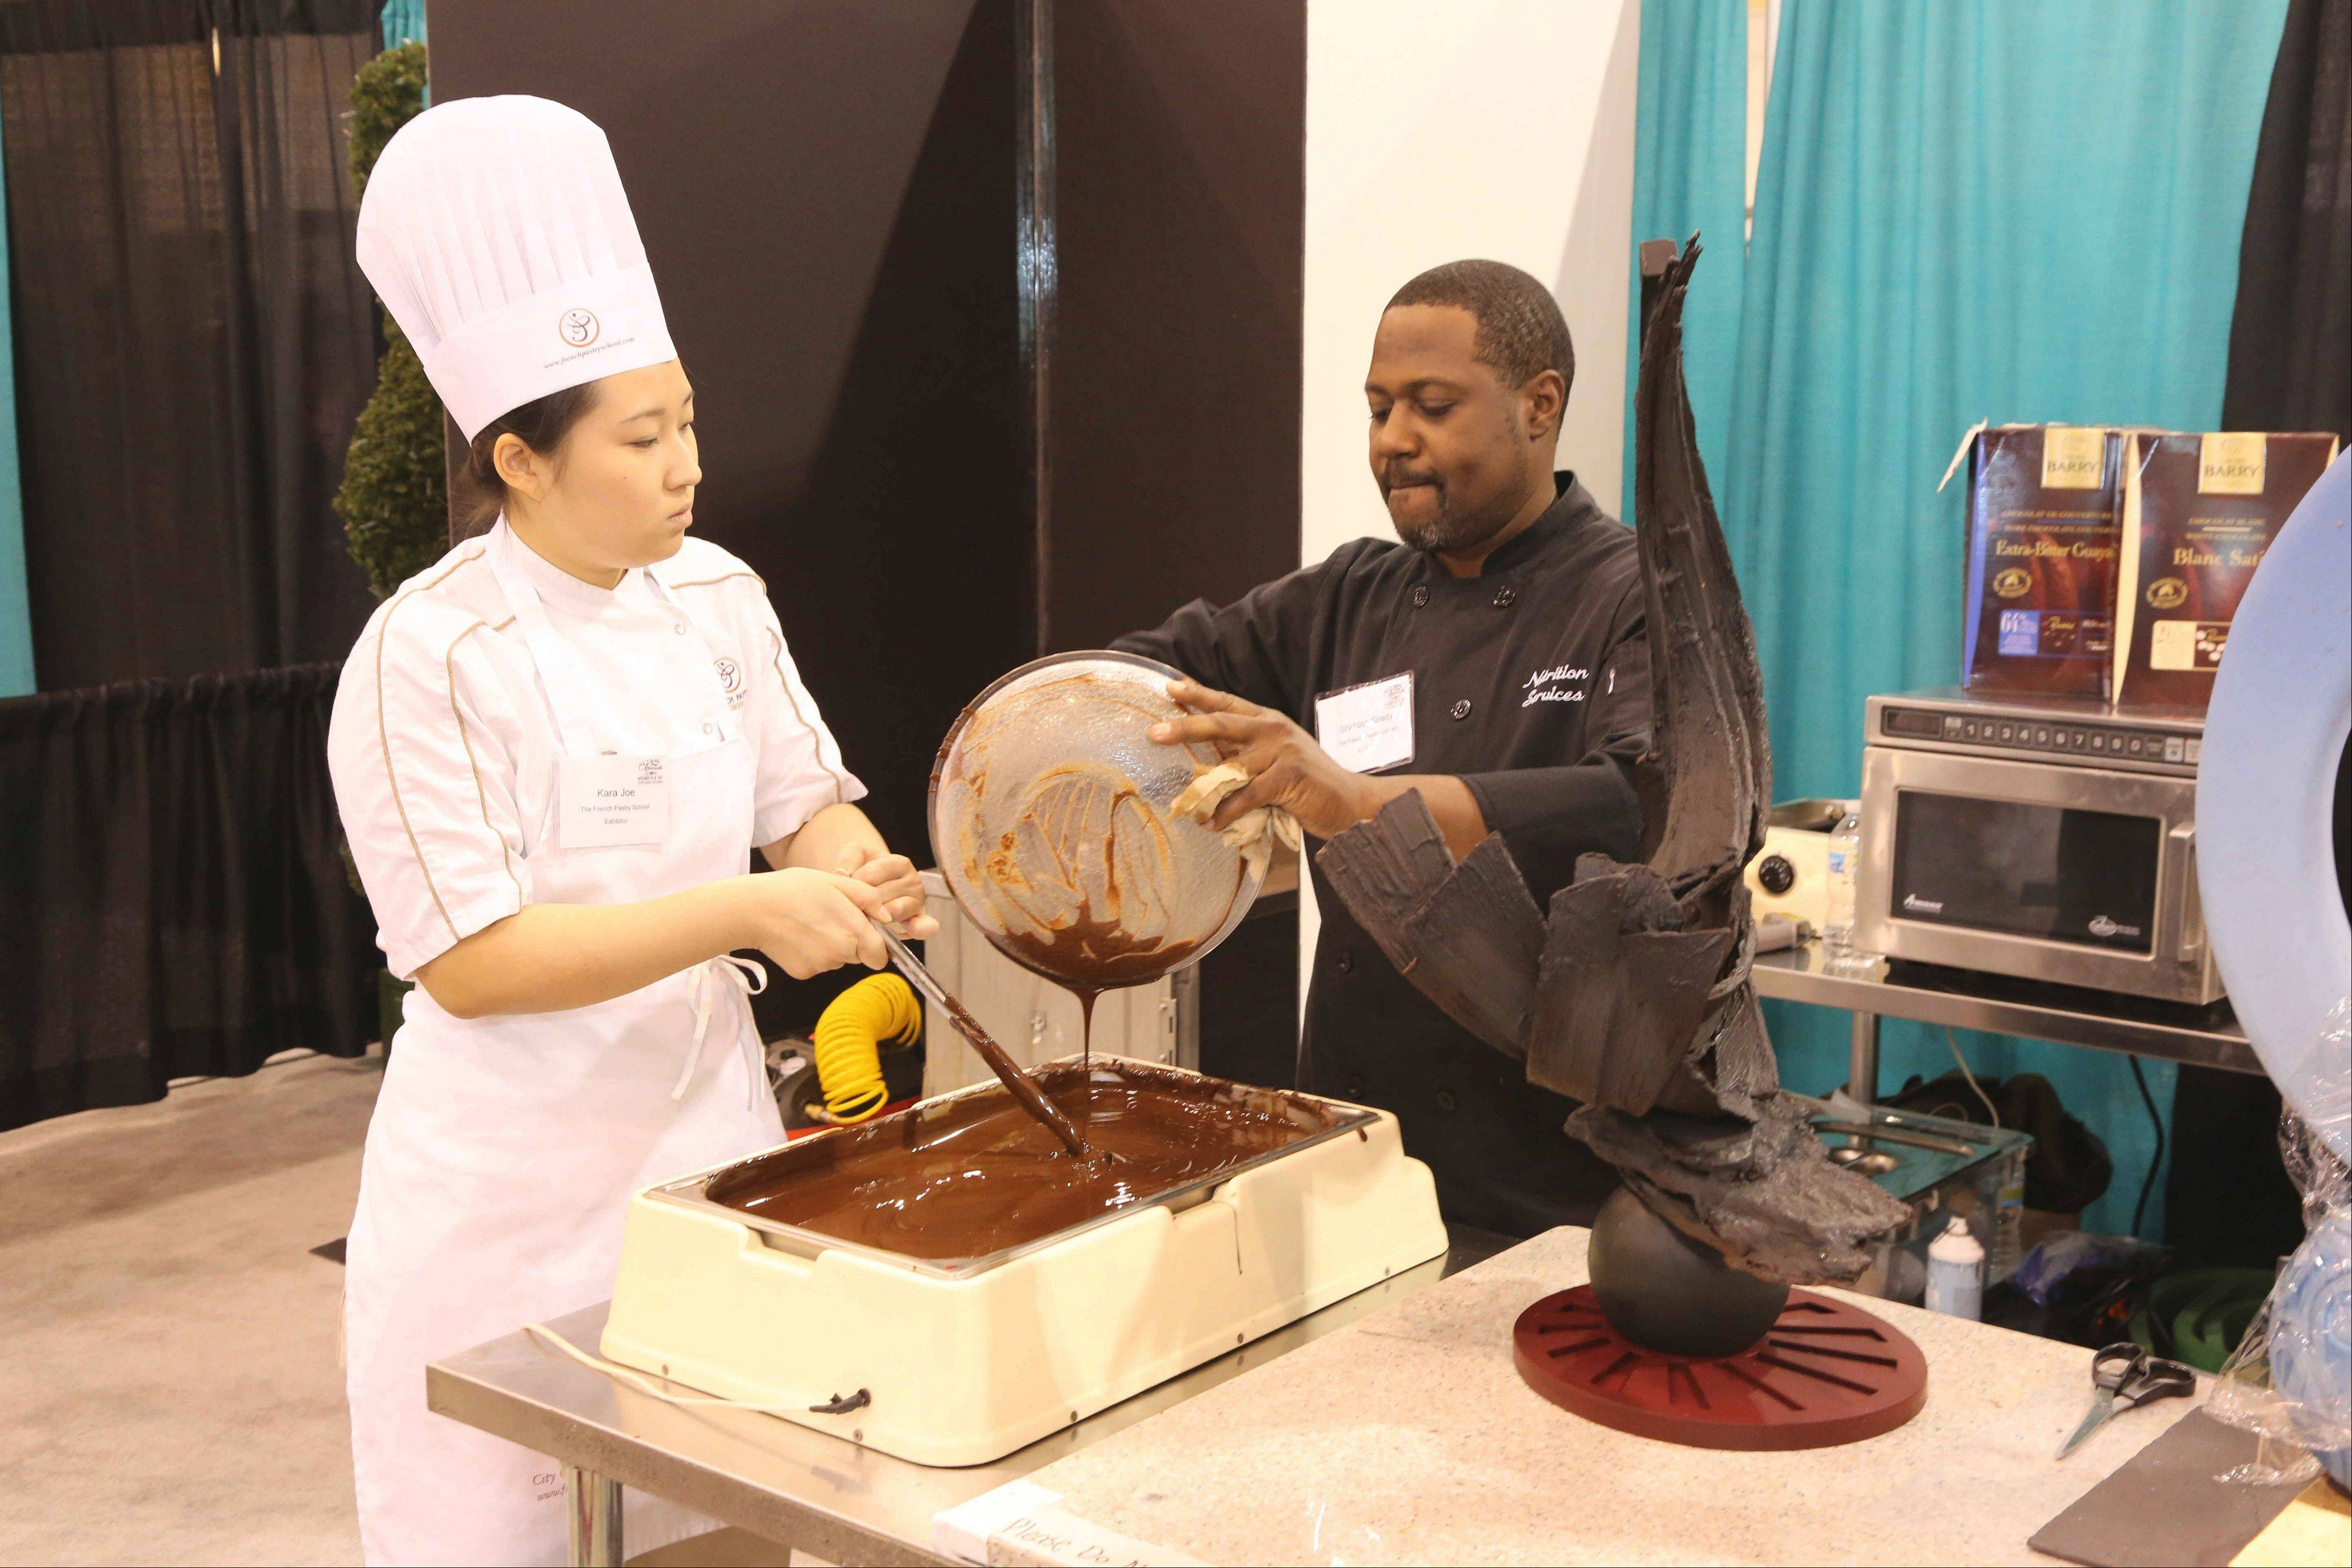 Watch demonstrations and more at the Chicago Fine Chocolate & Dessert Show Oct. 18-20 at Navy Pier.